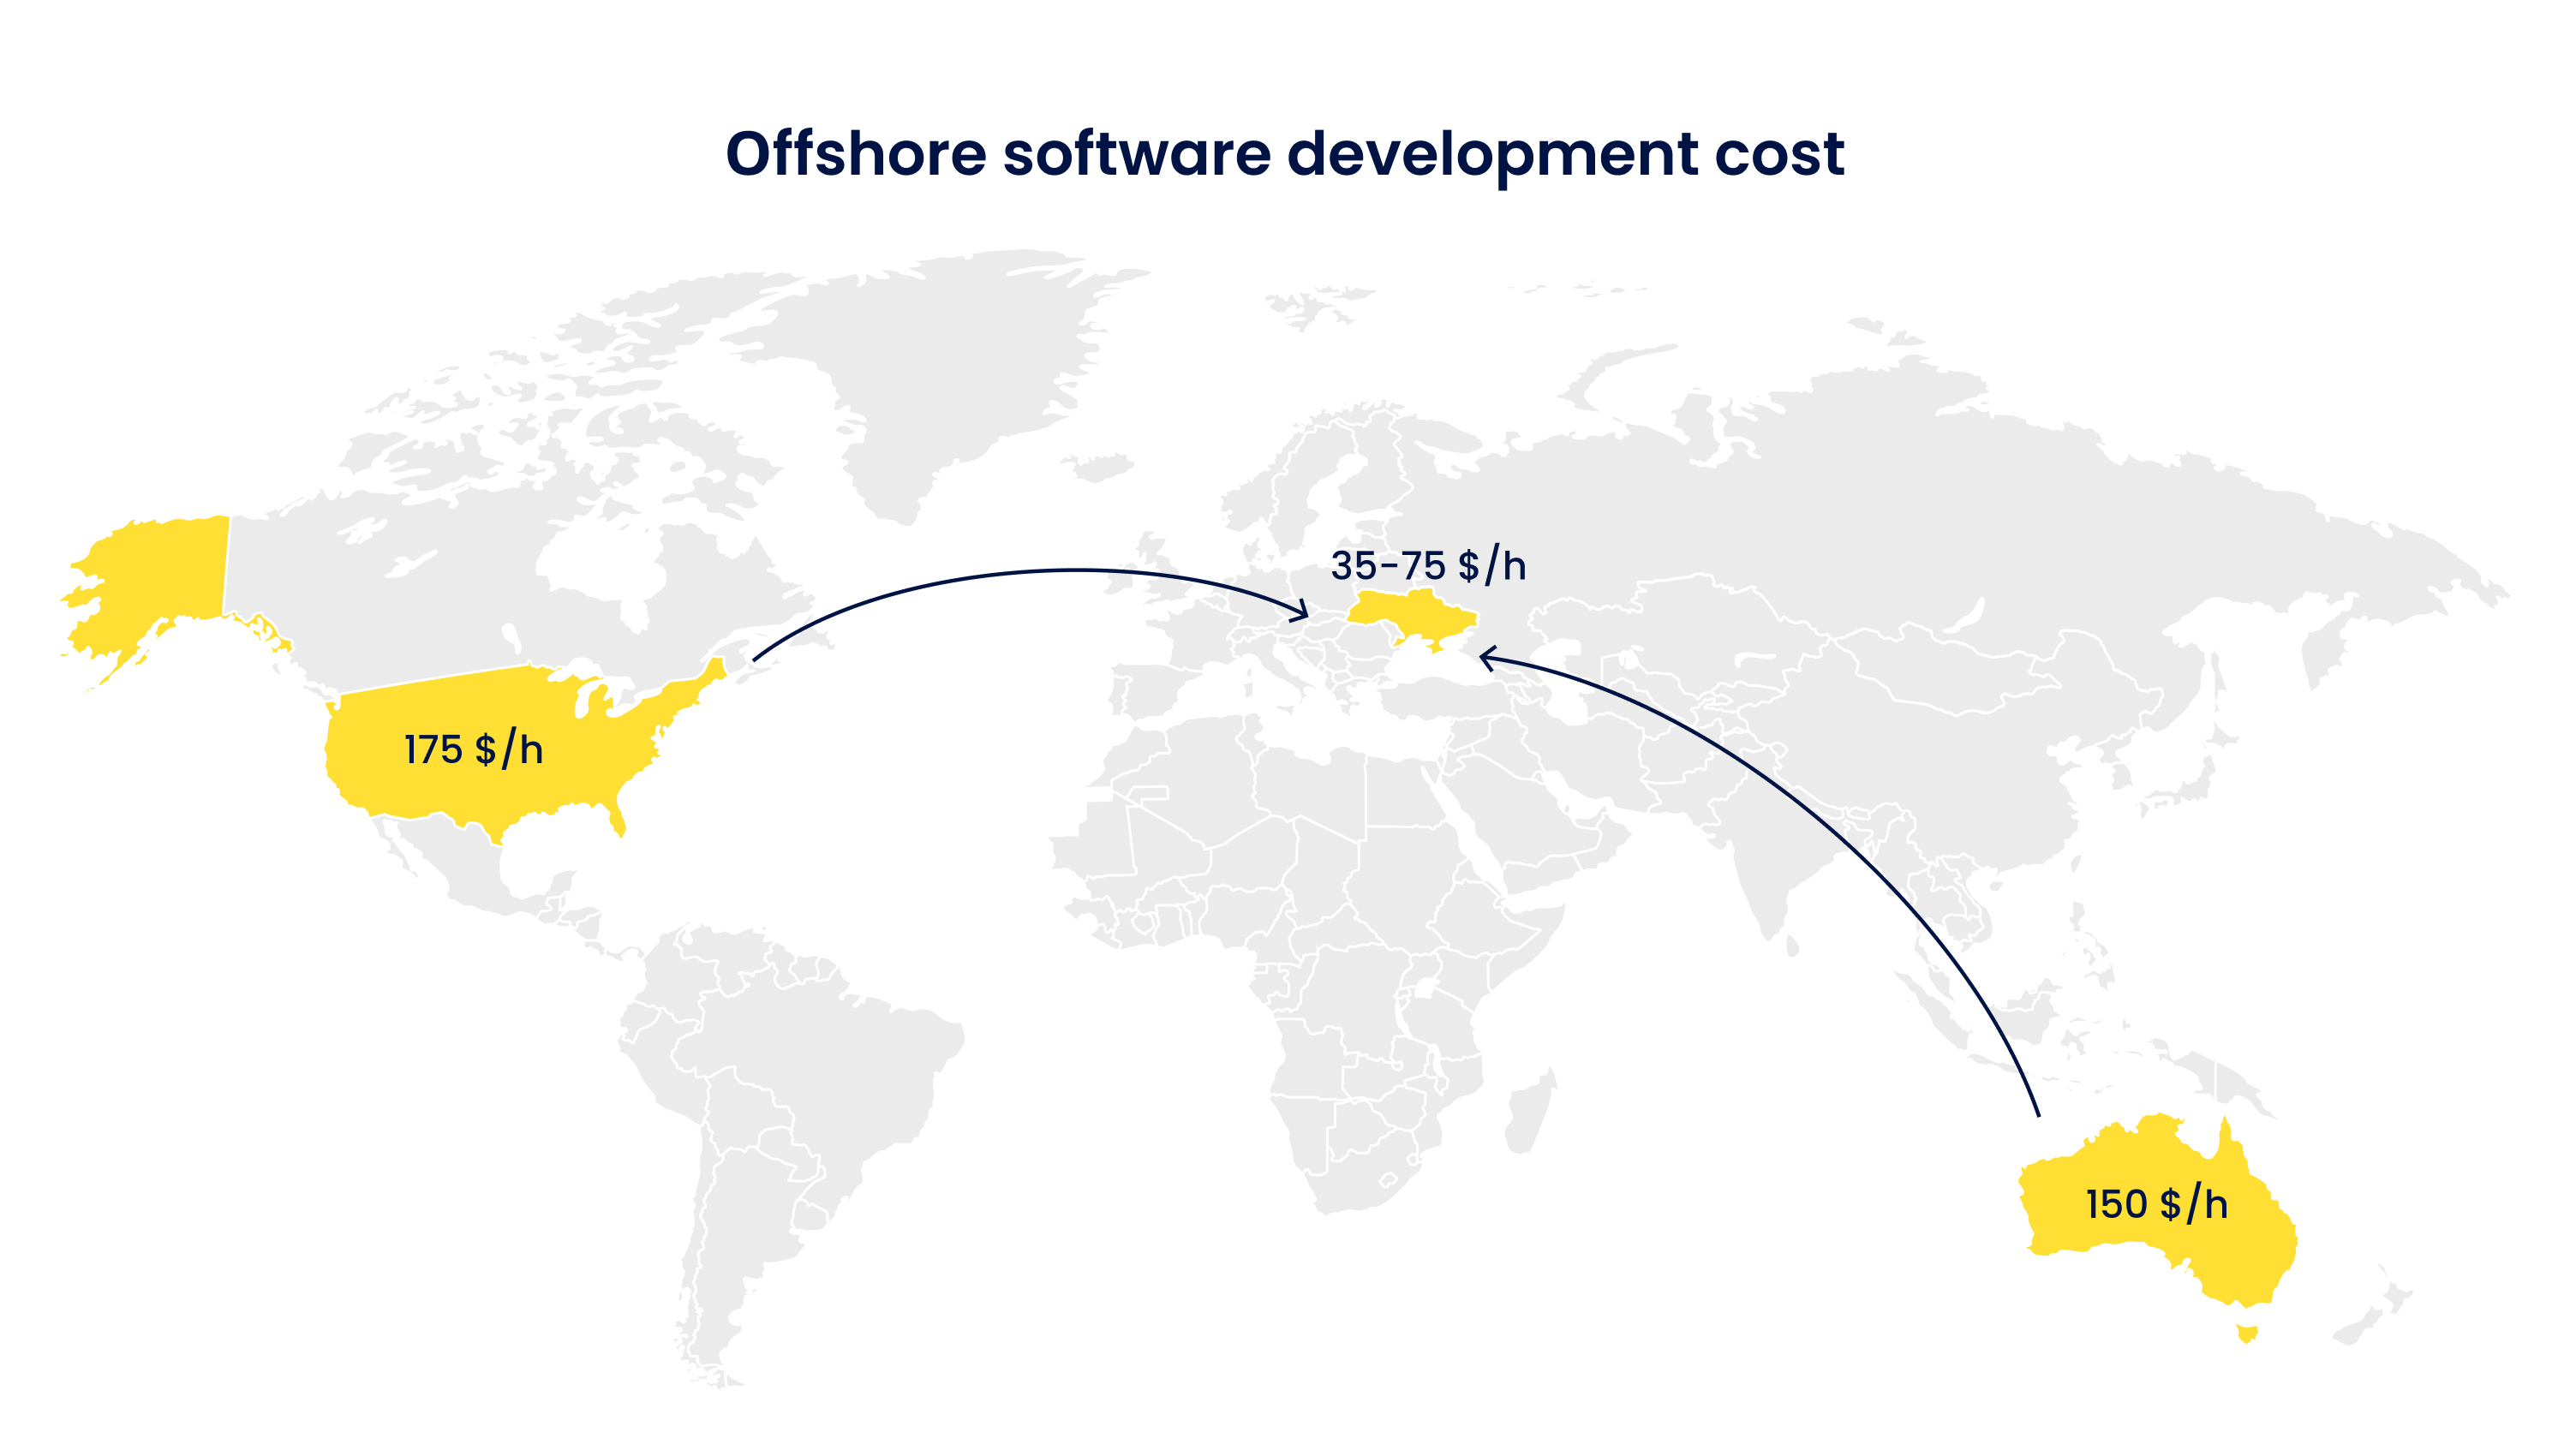 Offshore software development cost